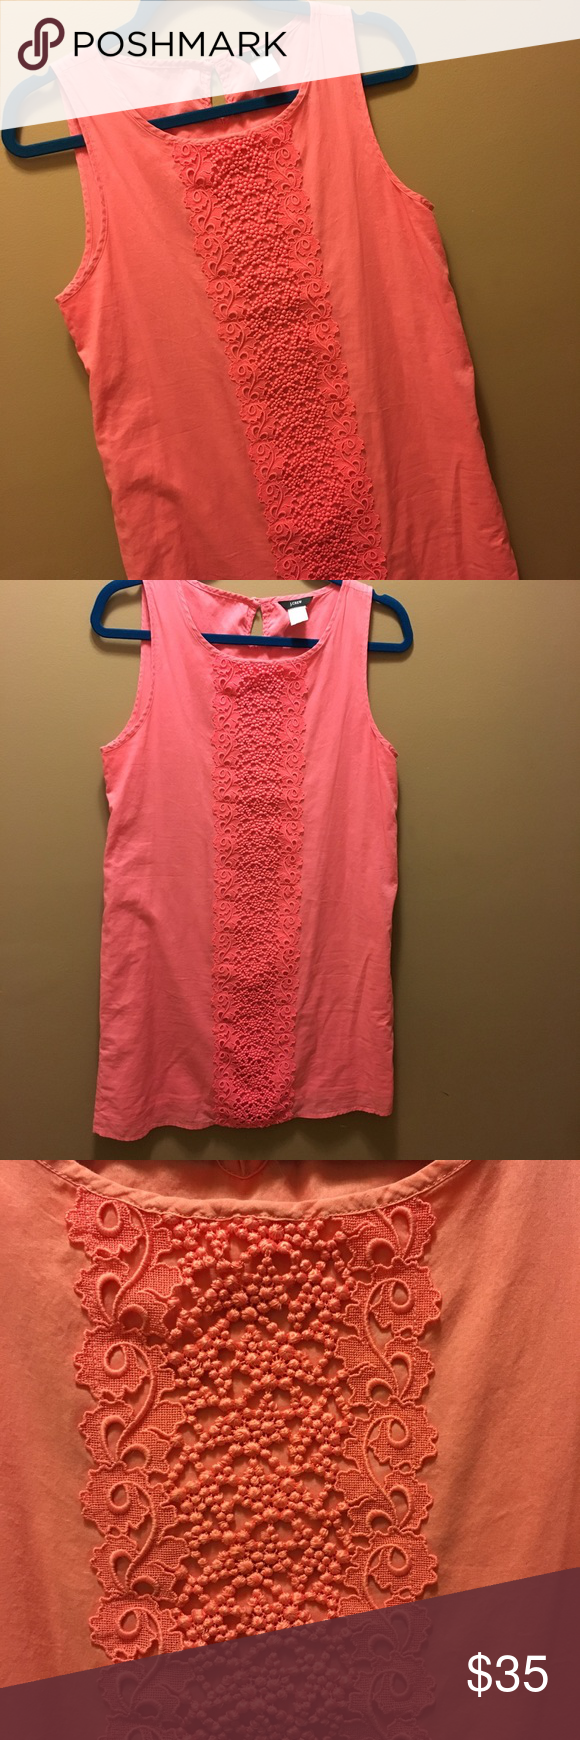 Coral Sundress Great condition, offers welcome! J. Crew Dresses Mini